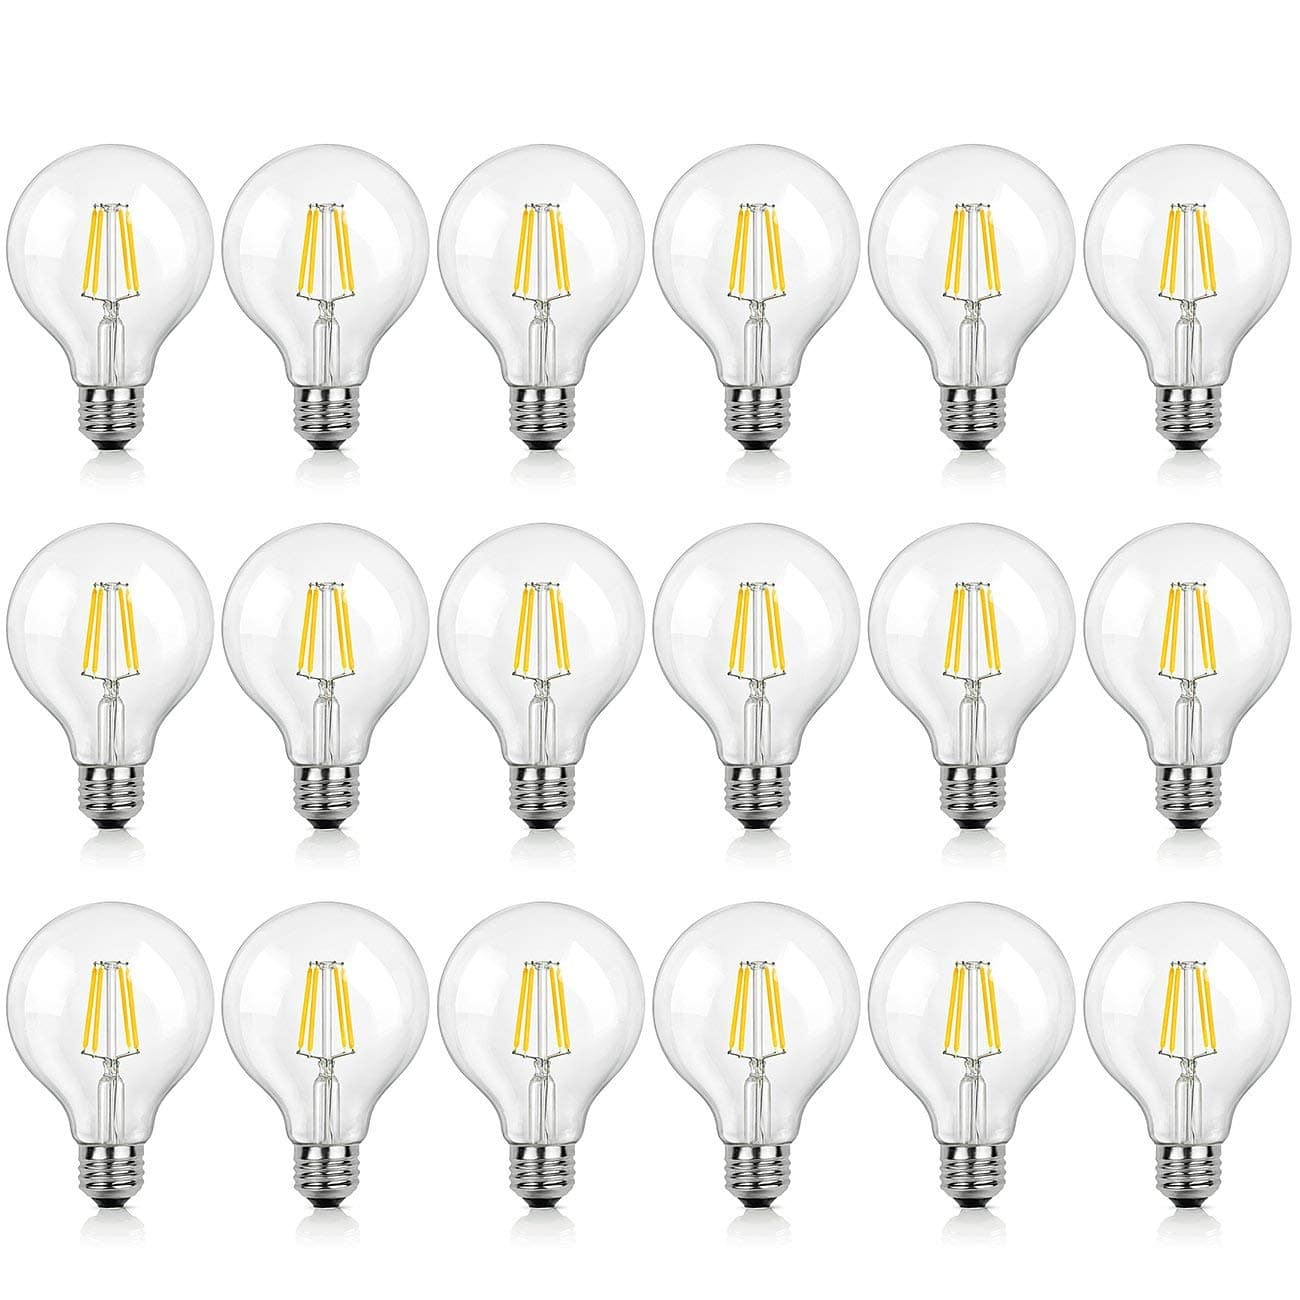 18-Pack G25 LED Filament Bulbs 2700K Warm White $19